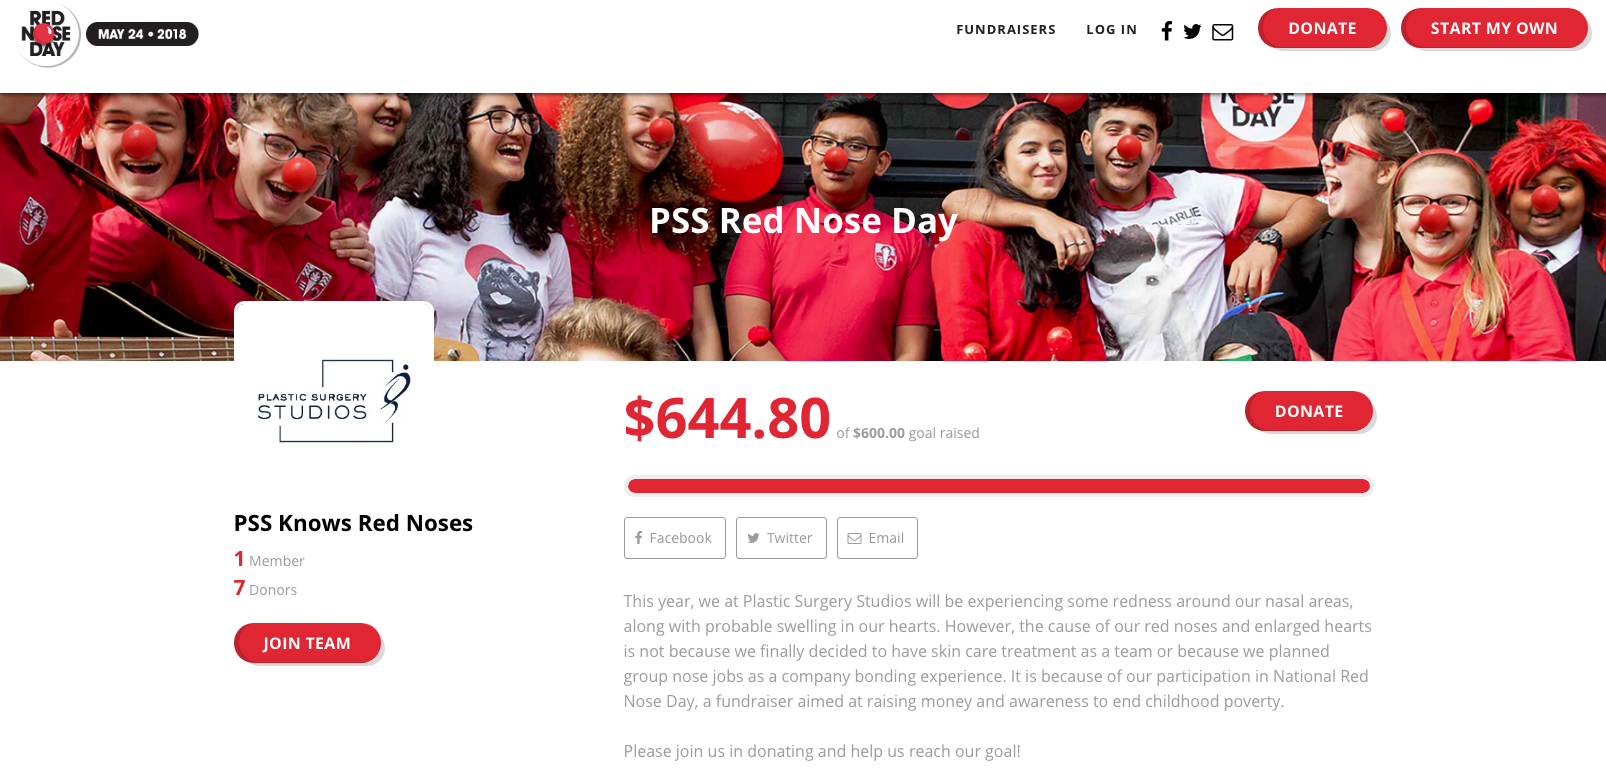 Red Nose Day Fundraiser Page